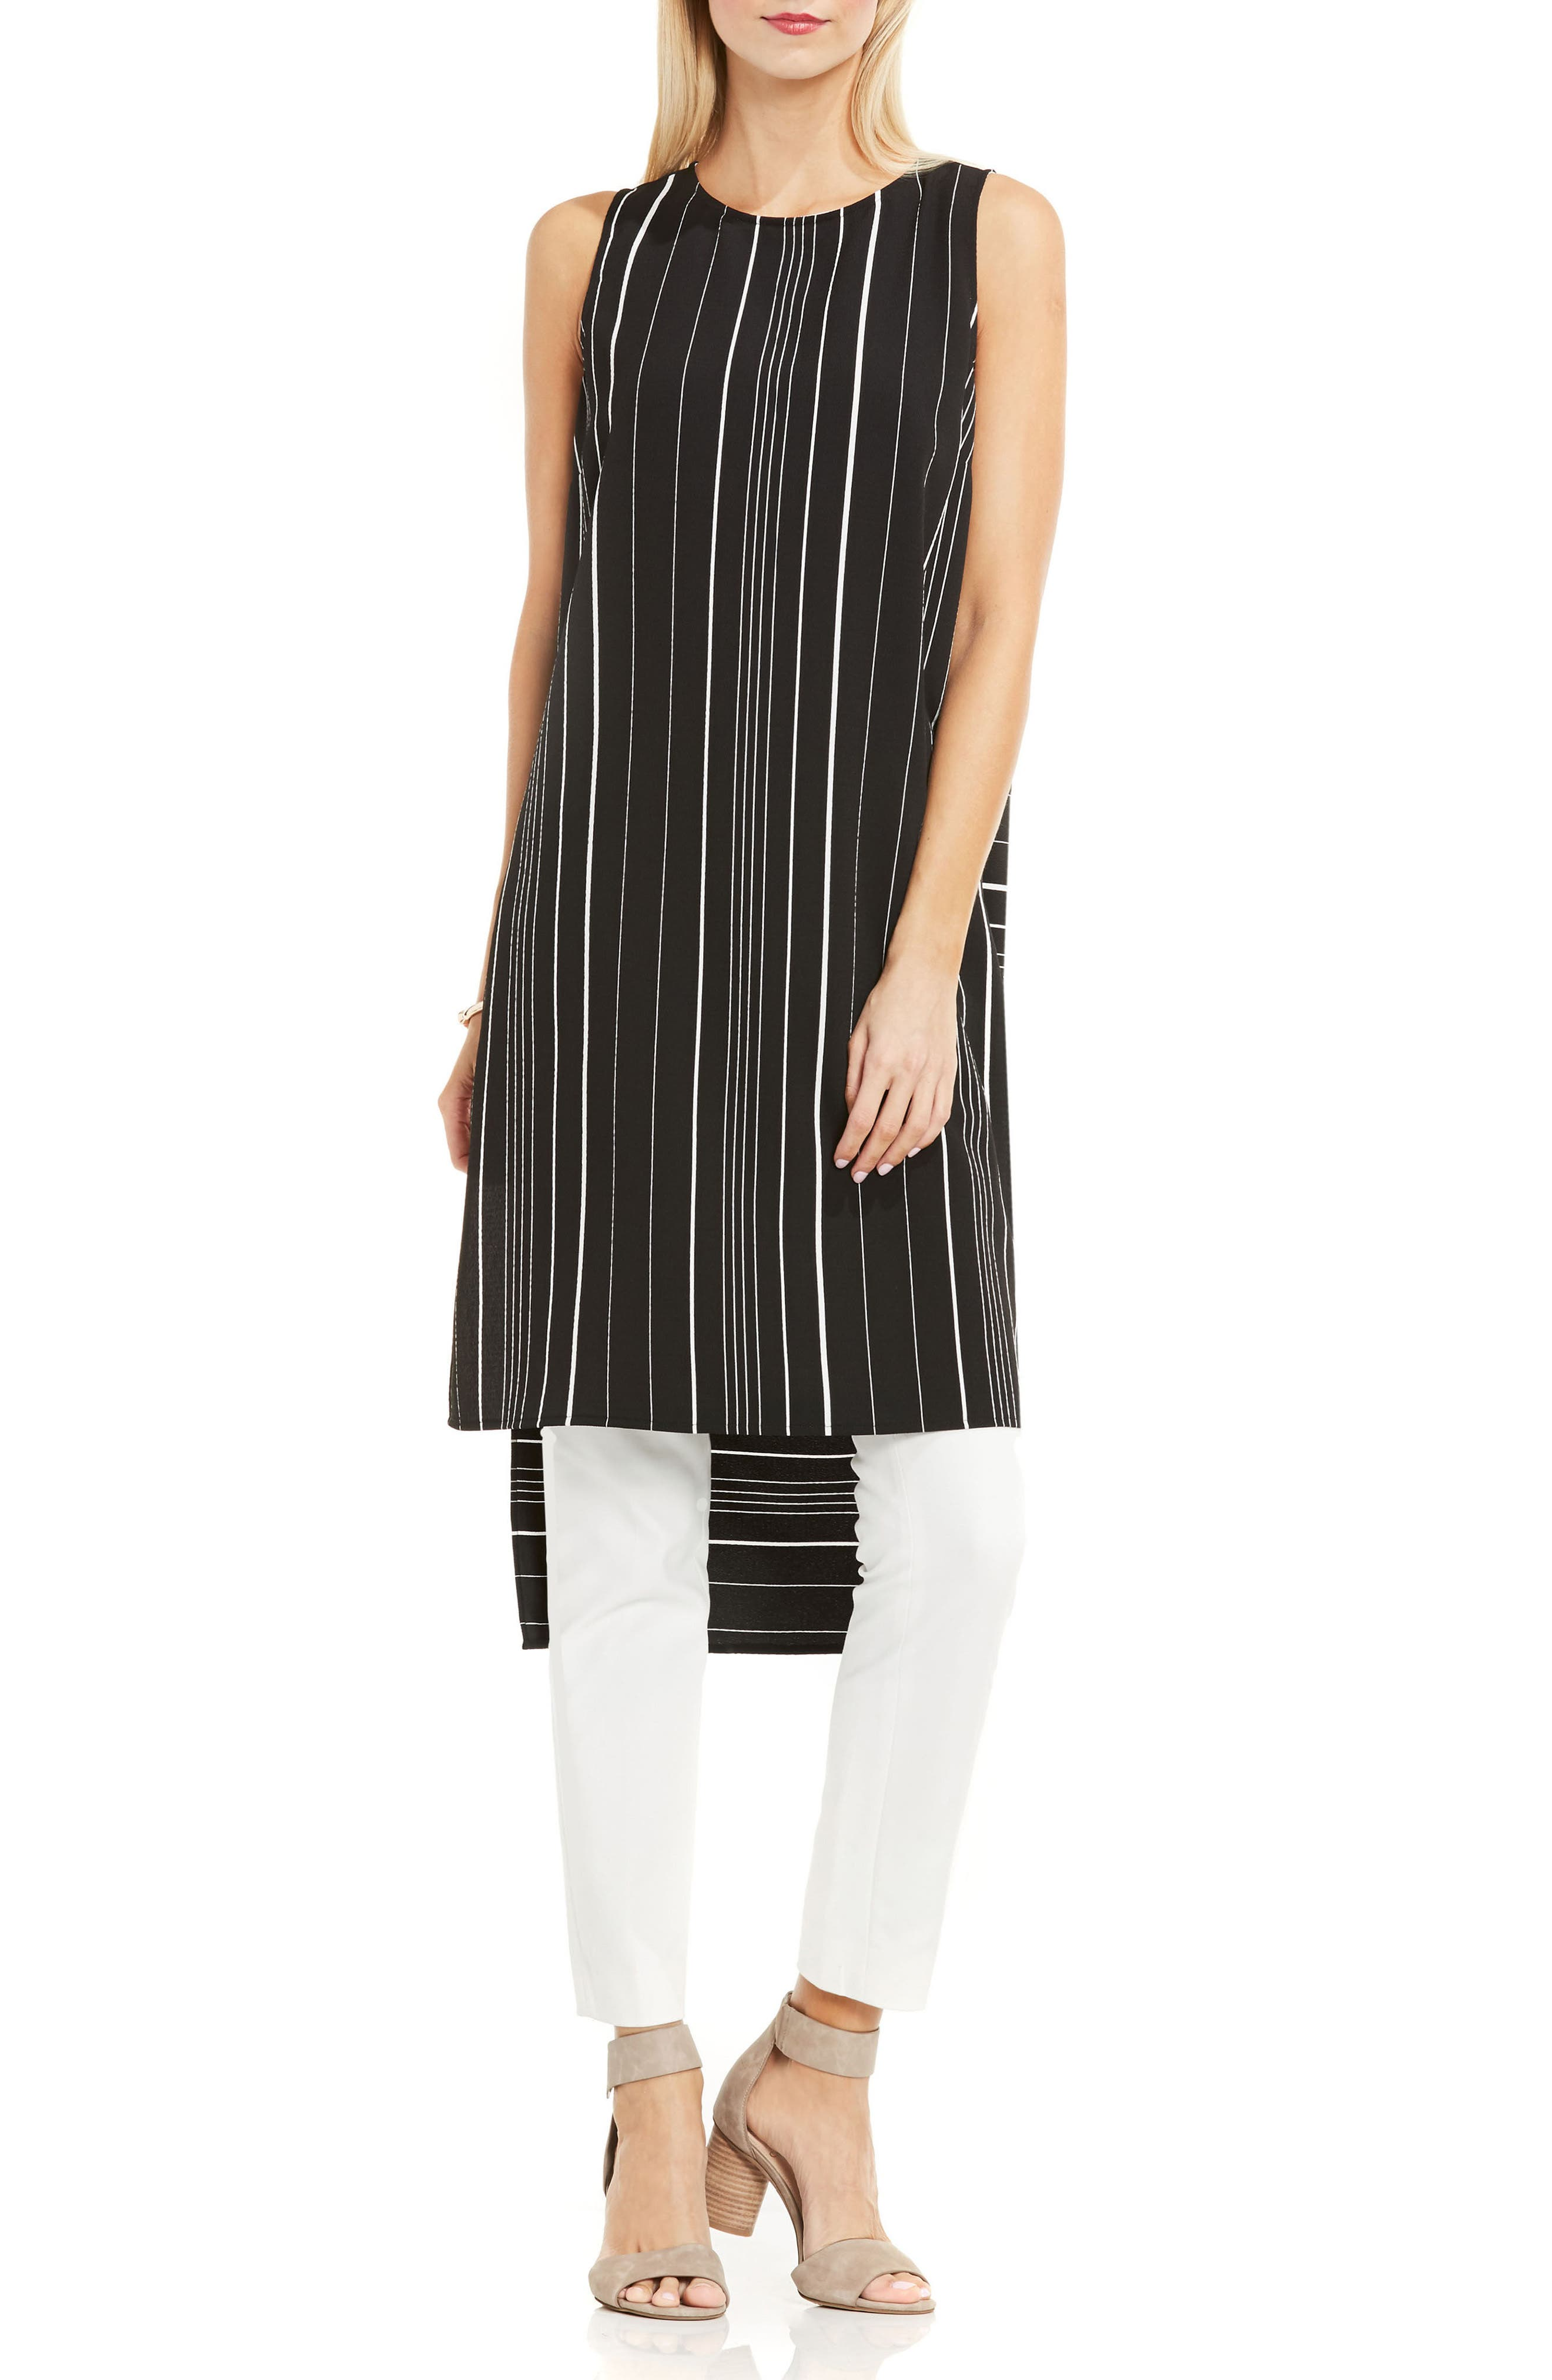 Alternate Image 1 Selected - Vince Camuto Stripe Tunic